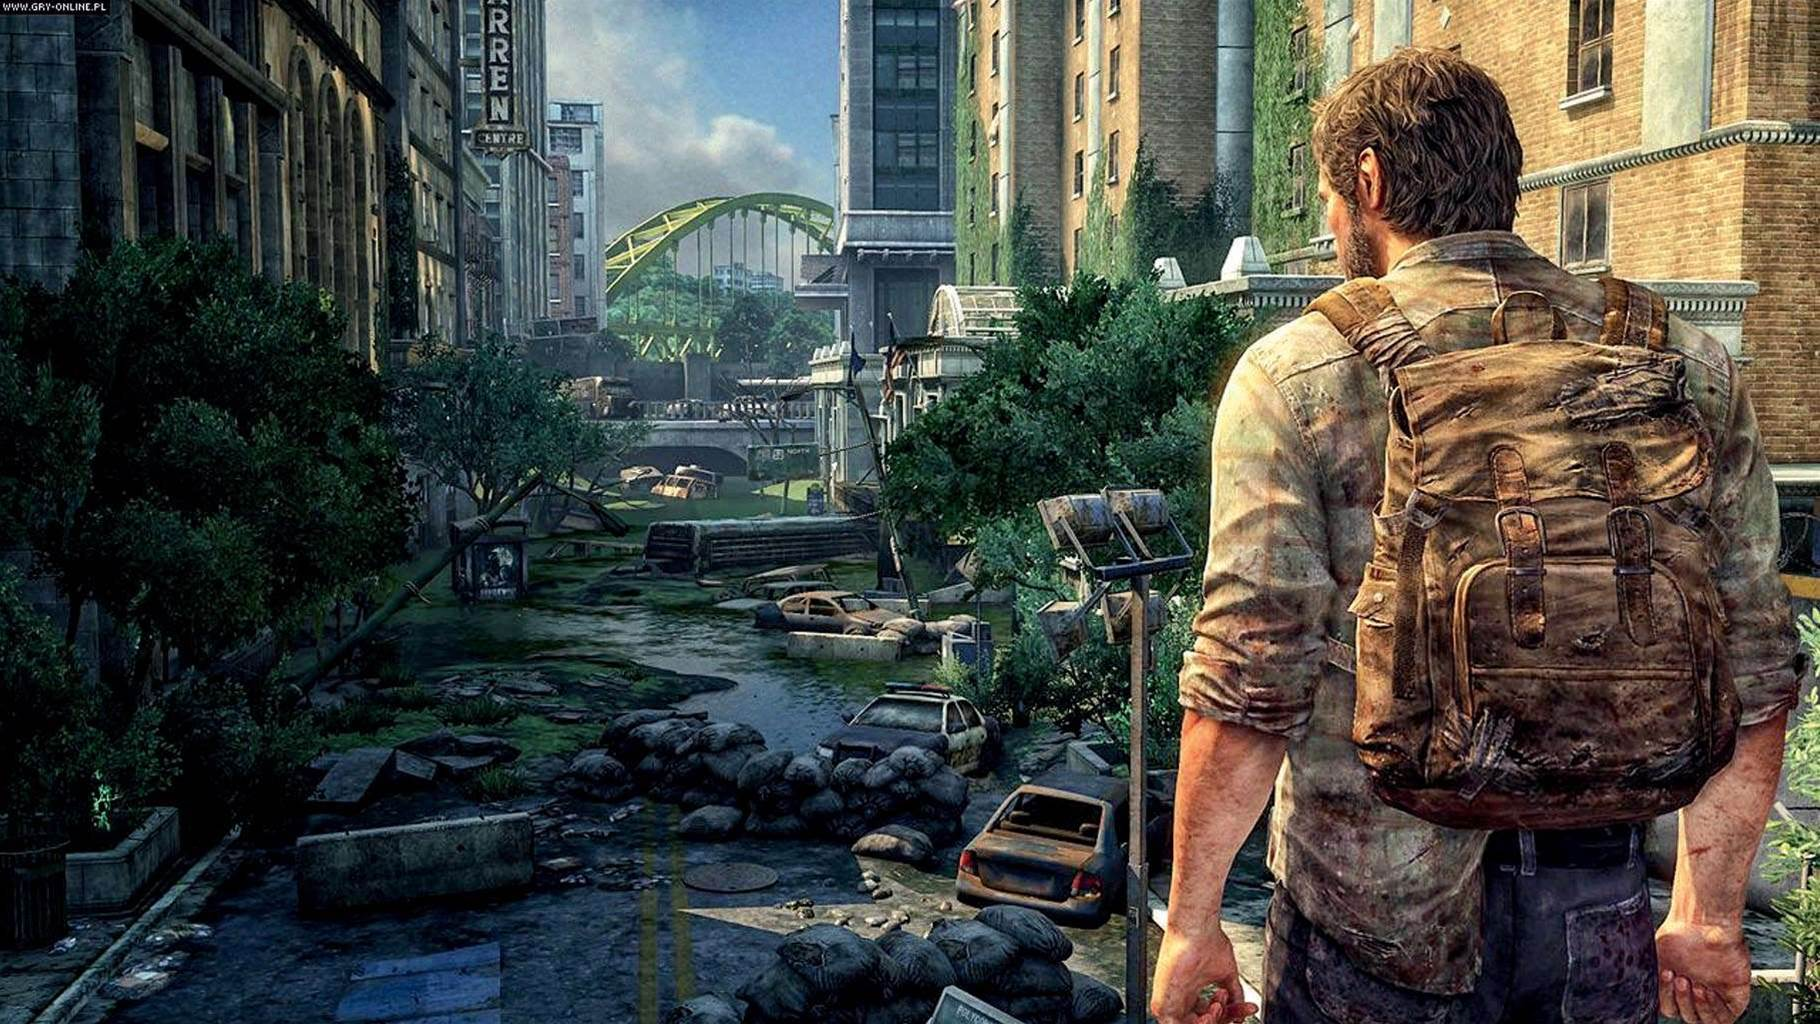 Preview: The Last of Us